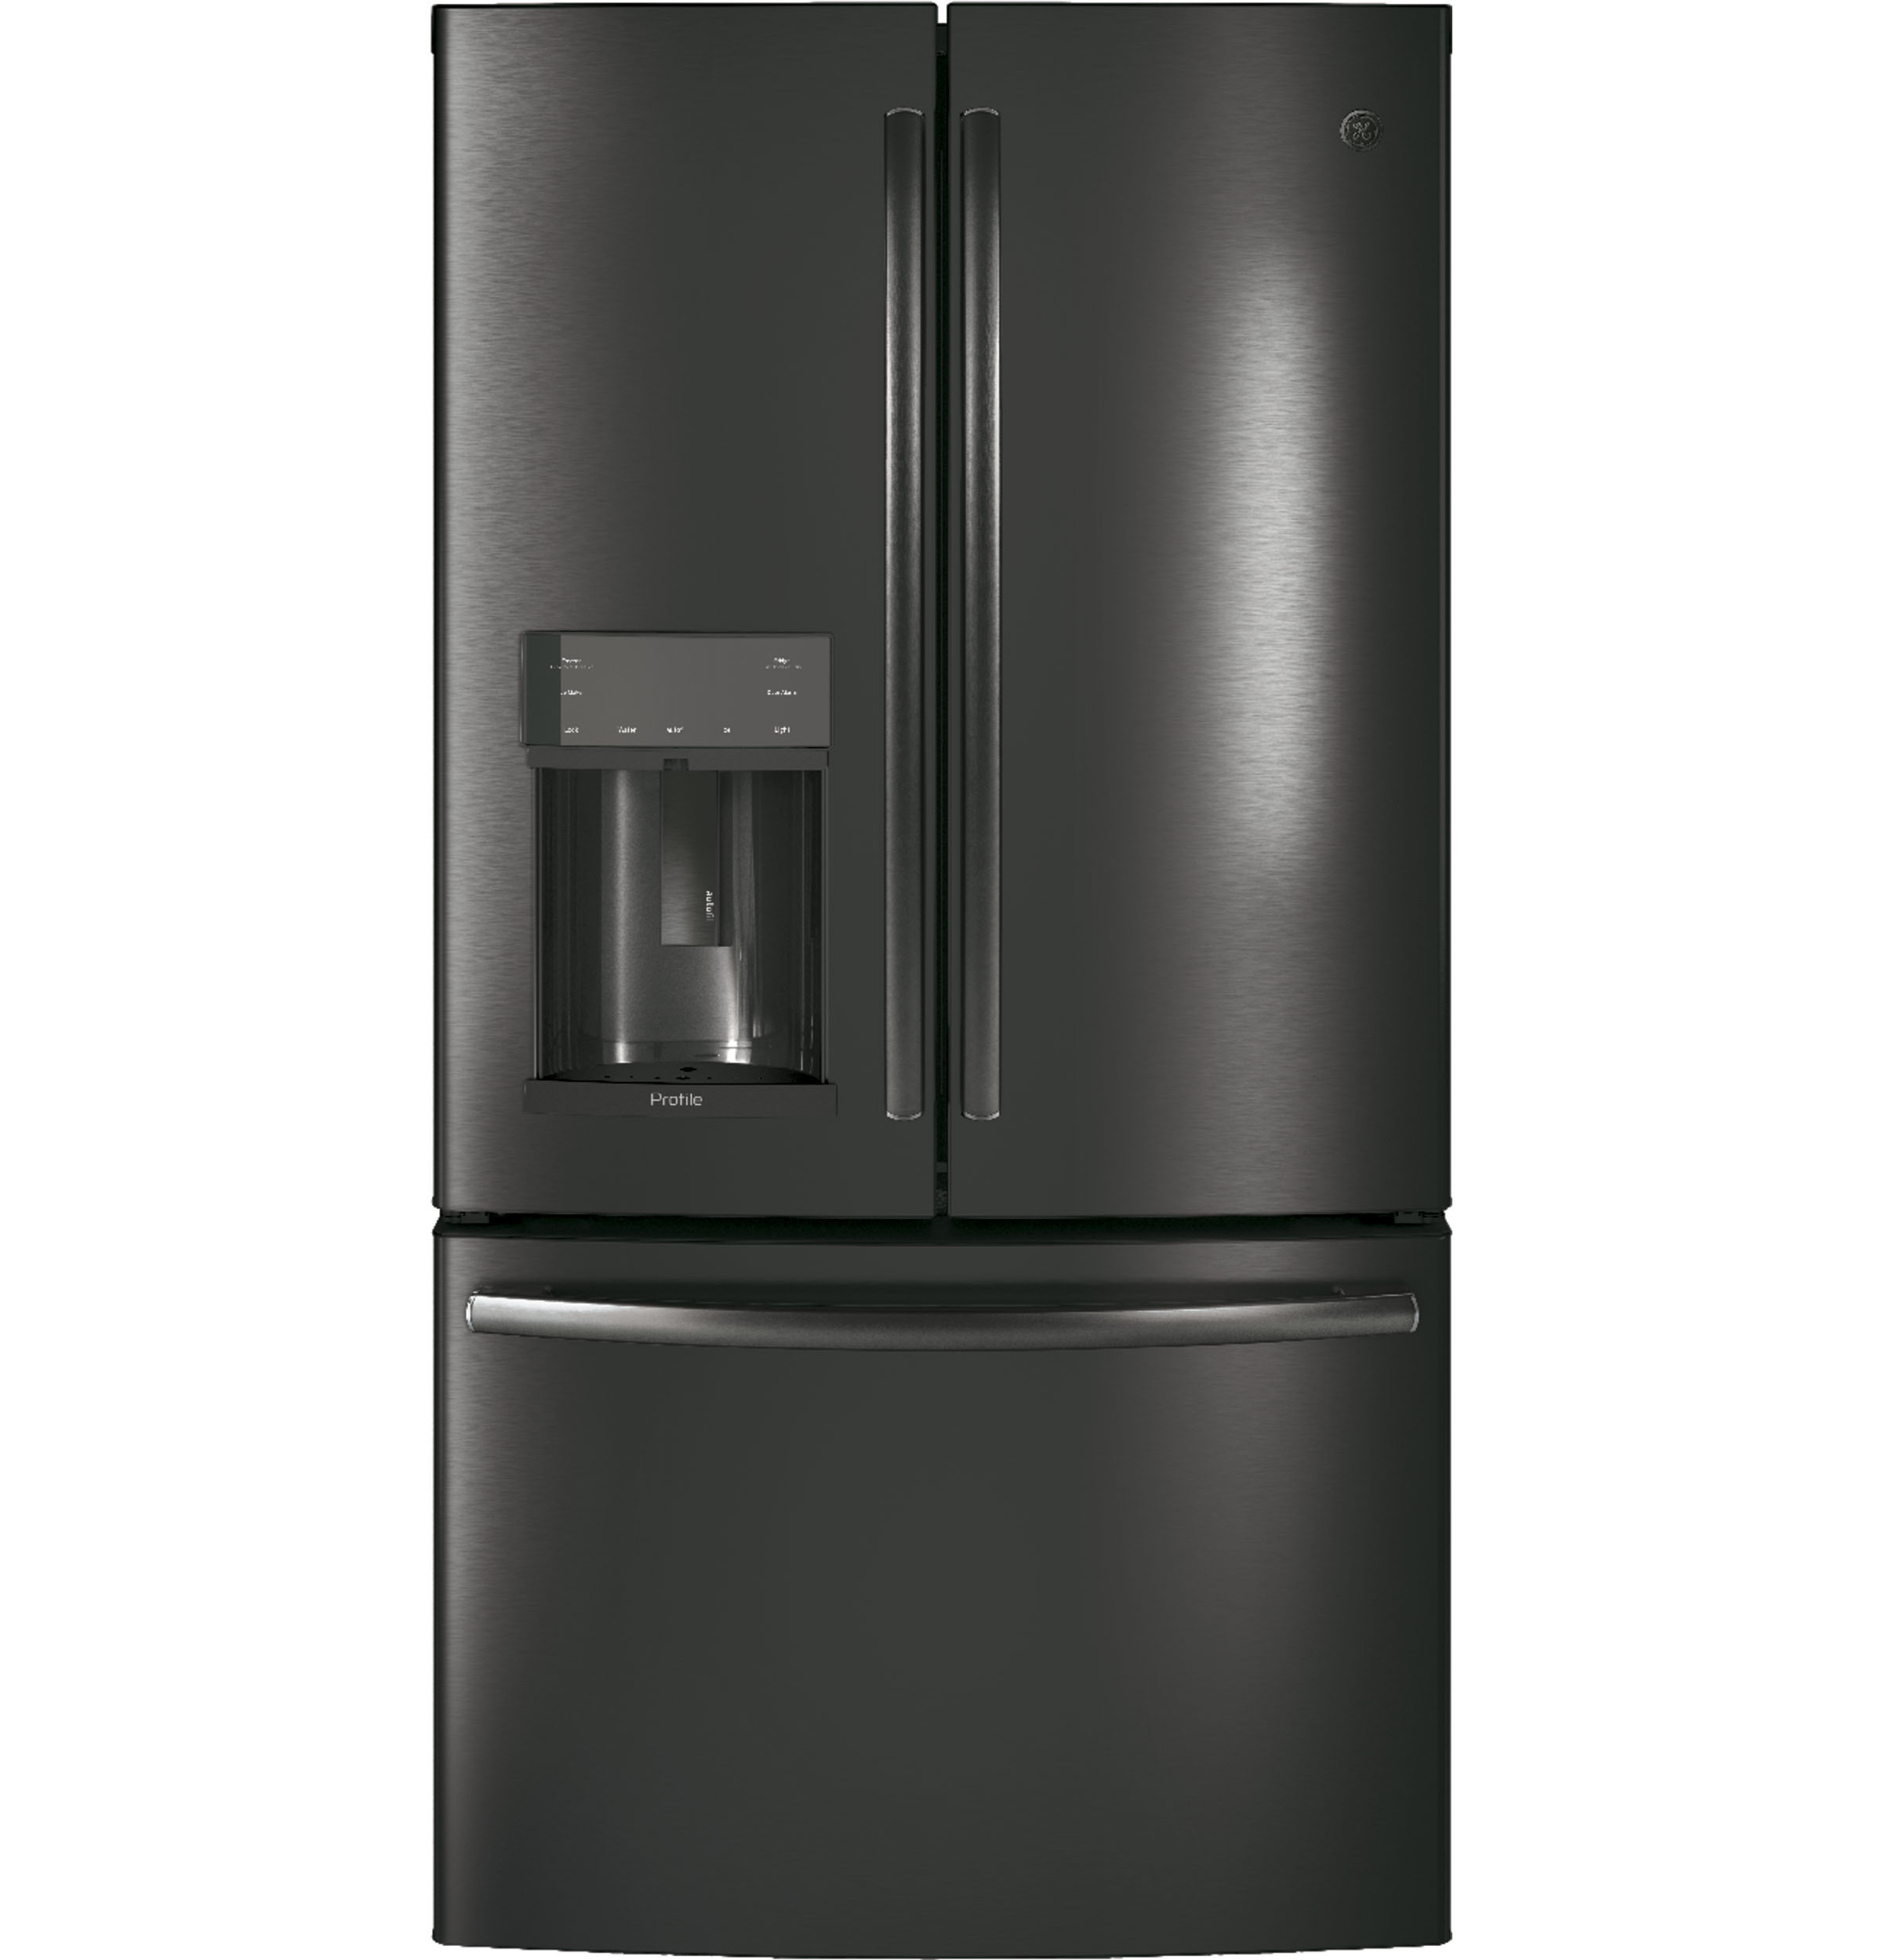 GE Profile GE Profile™ Series ENERGY STAR® 22.2 Cu. Ft. Counter-Depth French-Door Refrigerator with Hands-Free AutoFill